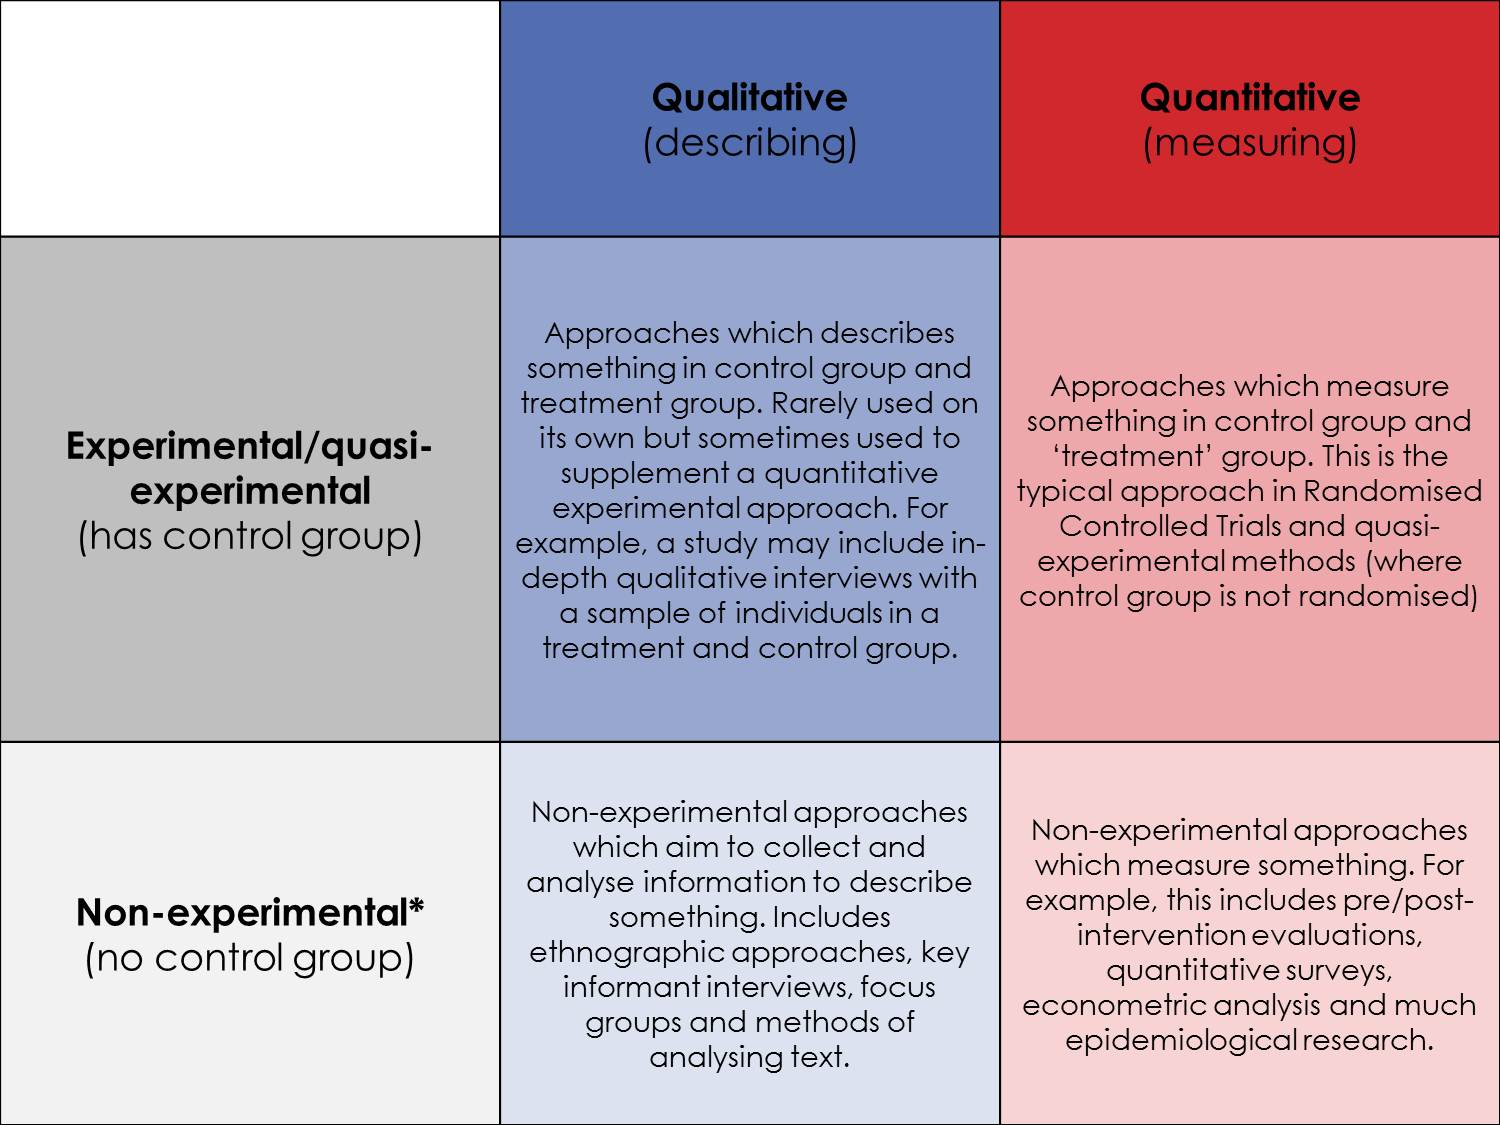 qualitative and quantitative research methods psychology essay Qualitative approach or research means, it is a meaning and understanding research, where as quantitative research, it is a measurement and explanation research qualitative research is a open system, example: ecological validity and quantitative research is a closed system, example: experimental control.